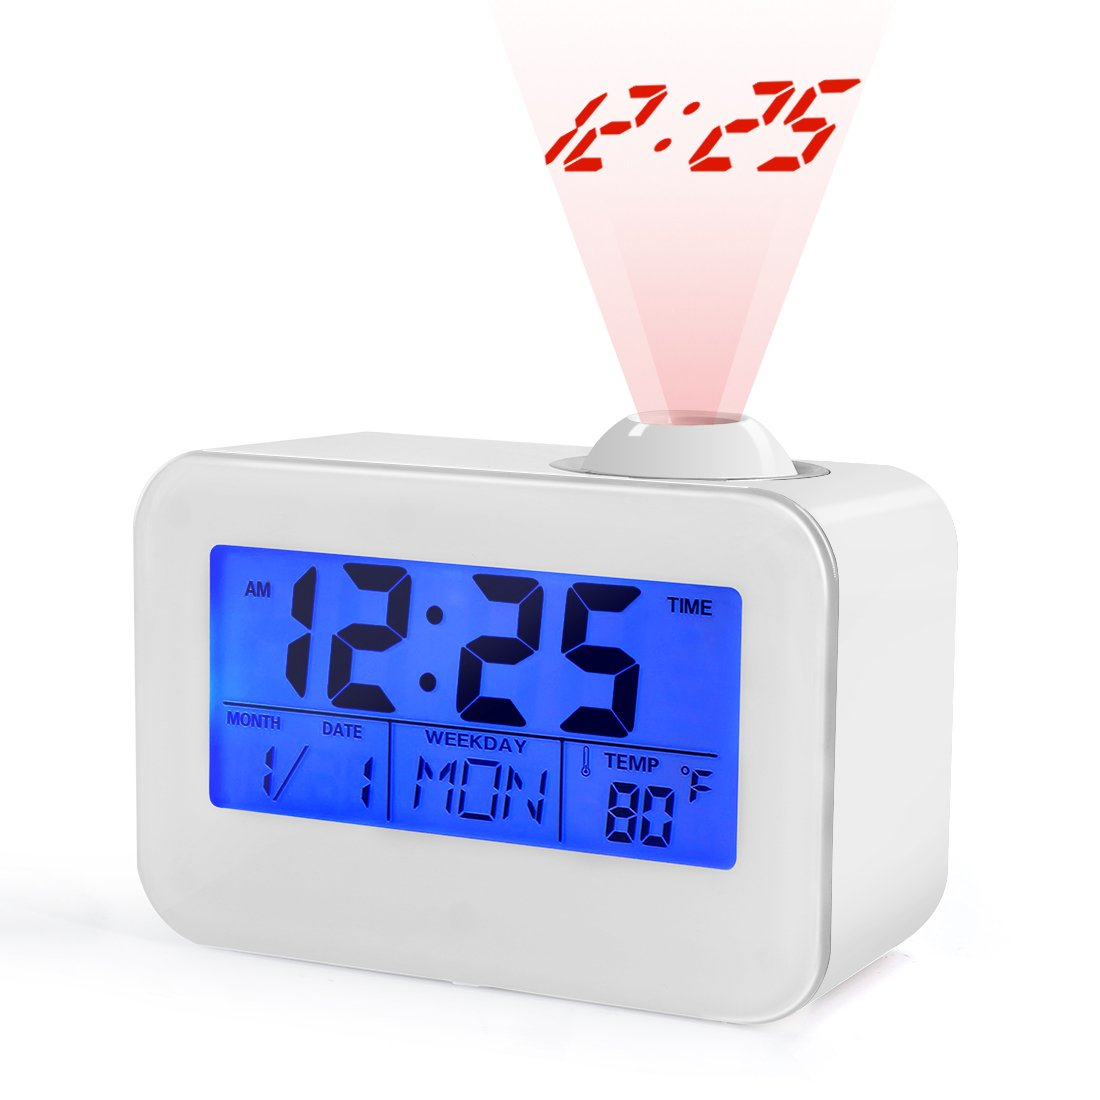 USCVIS Projection Alarm Clock, 4'' Digital Alarm Clocks for Bedrooms, Projection Ceiling Wall Clock with Date, Temperature, Snooze Function, Hourly Chime Function, Sensor Alarm Clock for Kids